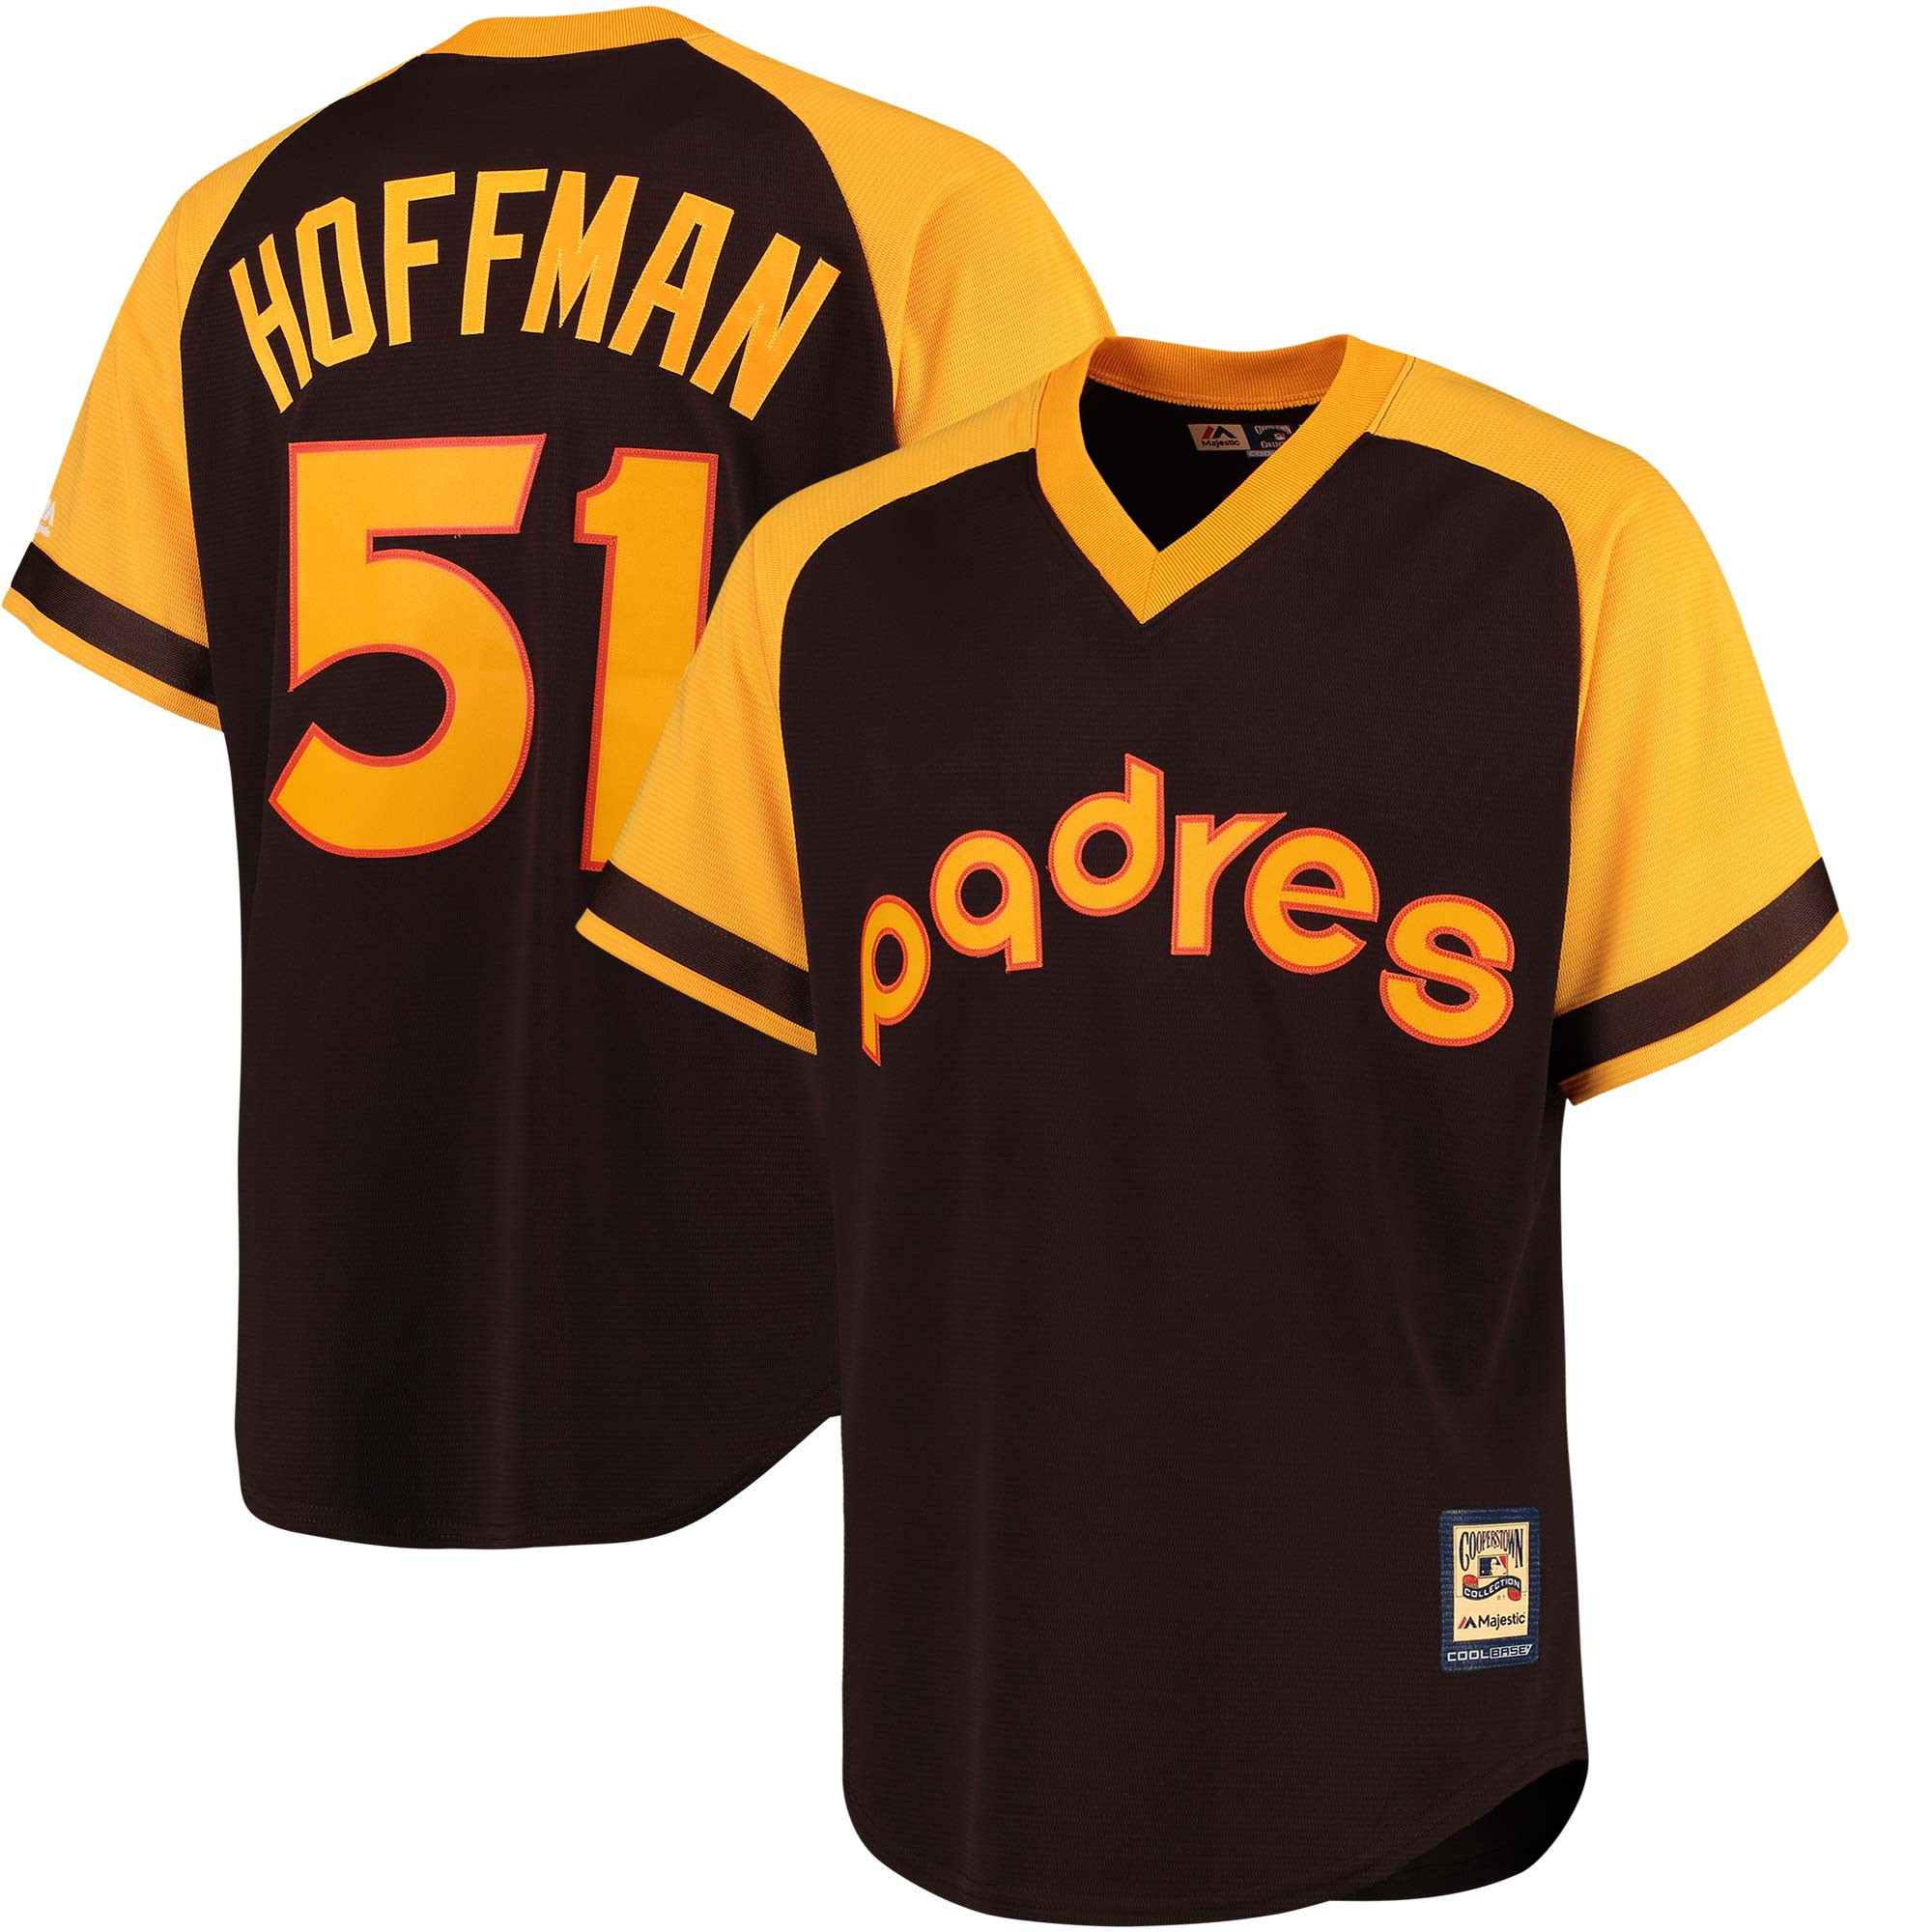 Trevor Hoffman San Diego Padres Majestic Cooperstown Collection Cool Base Player Jersey - Brown